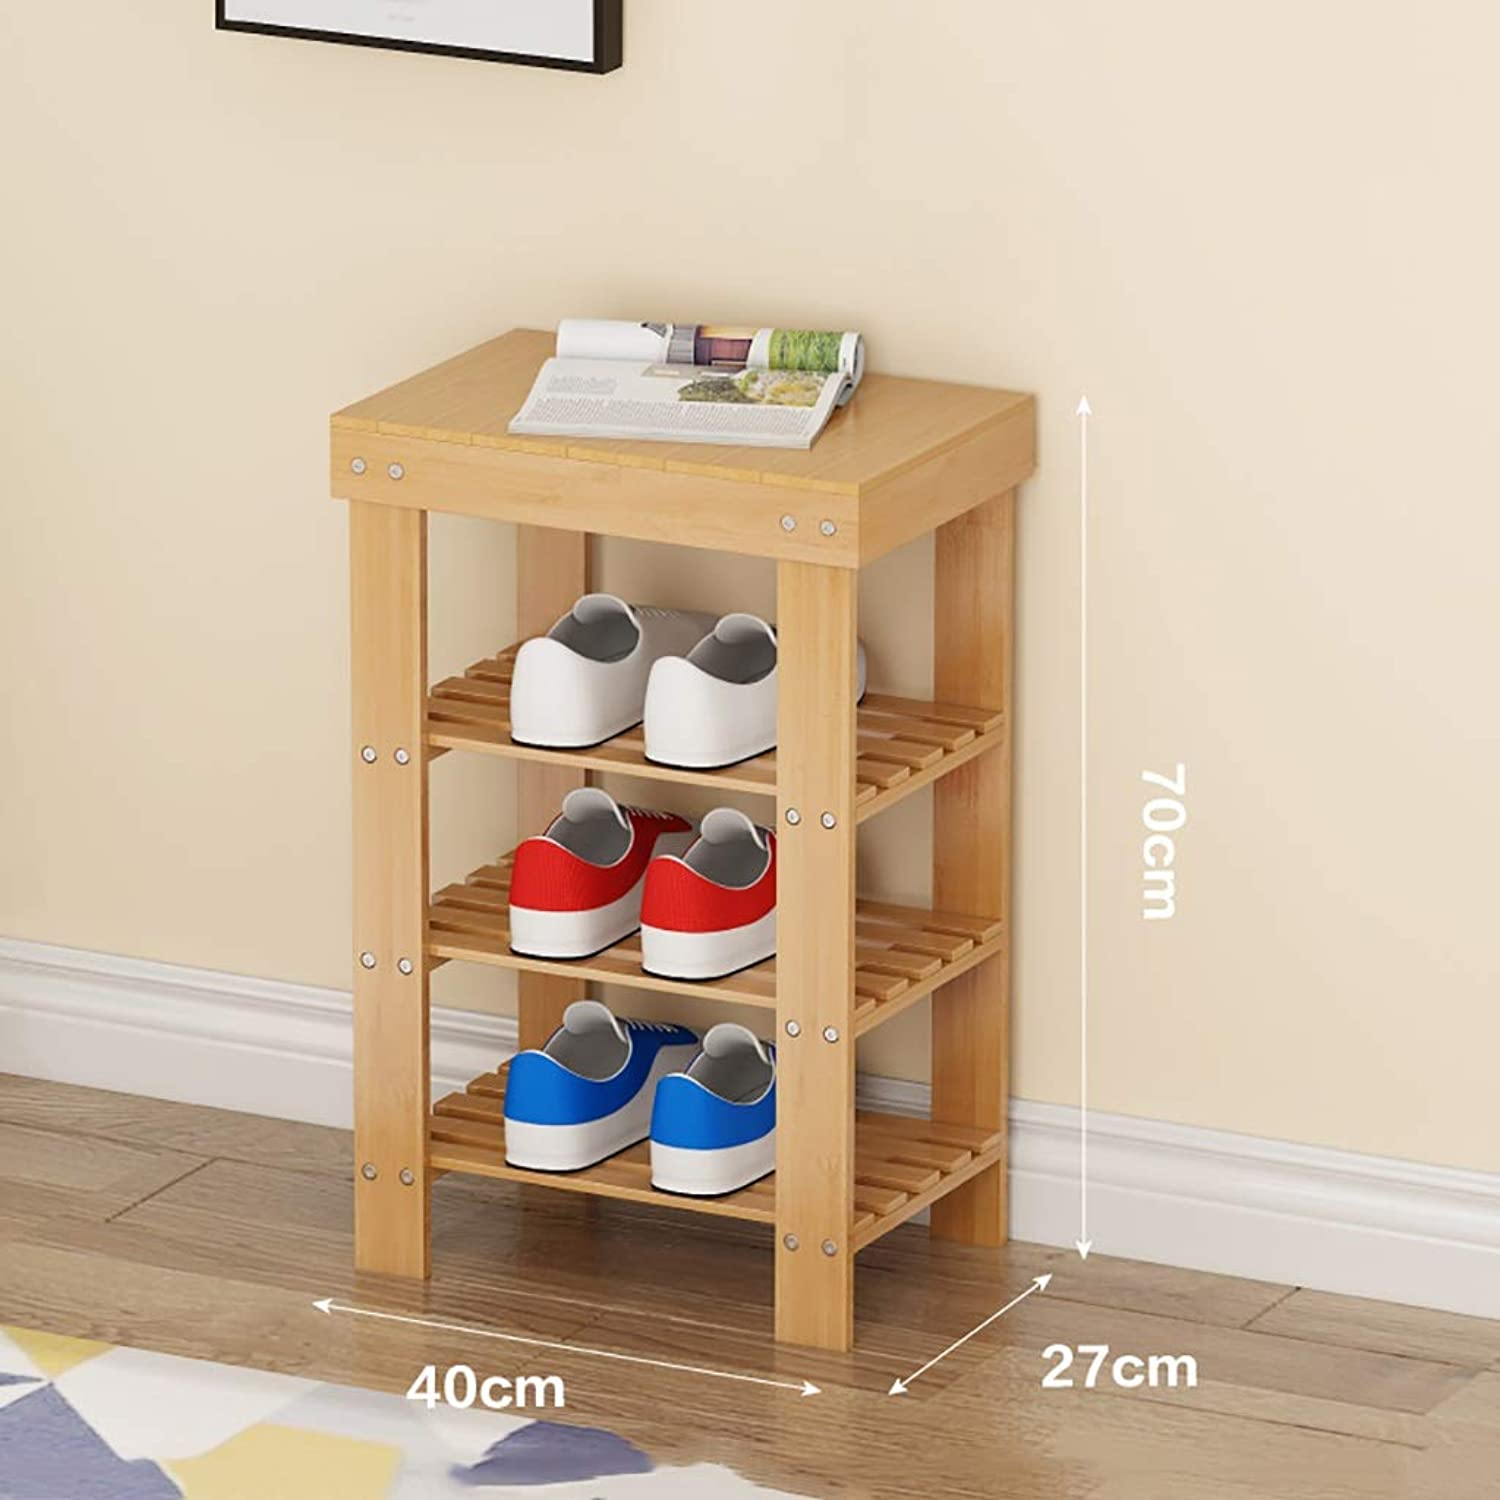 3 Layer shoes Rack Change shoes Bench Small shoes Cabinet at The Door Corridor Storage Stool Bamboo Household Space Saving Multifunction (Size   40  27  70cm)